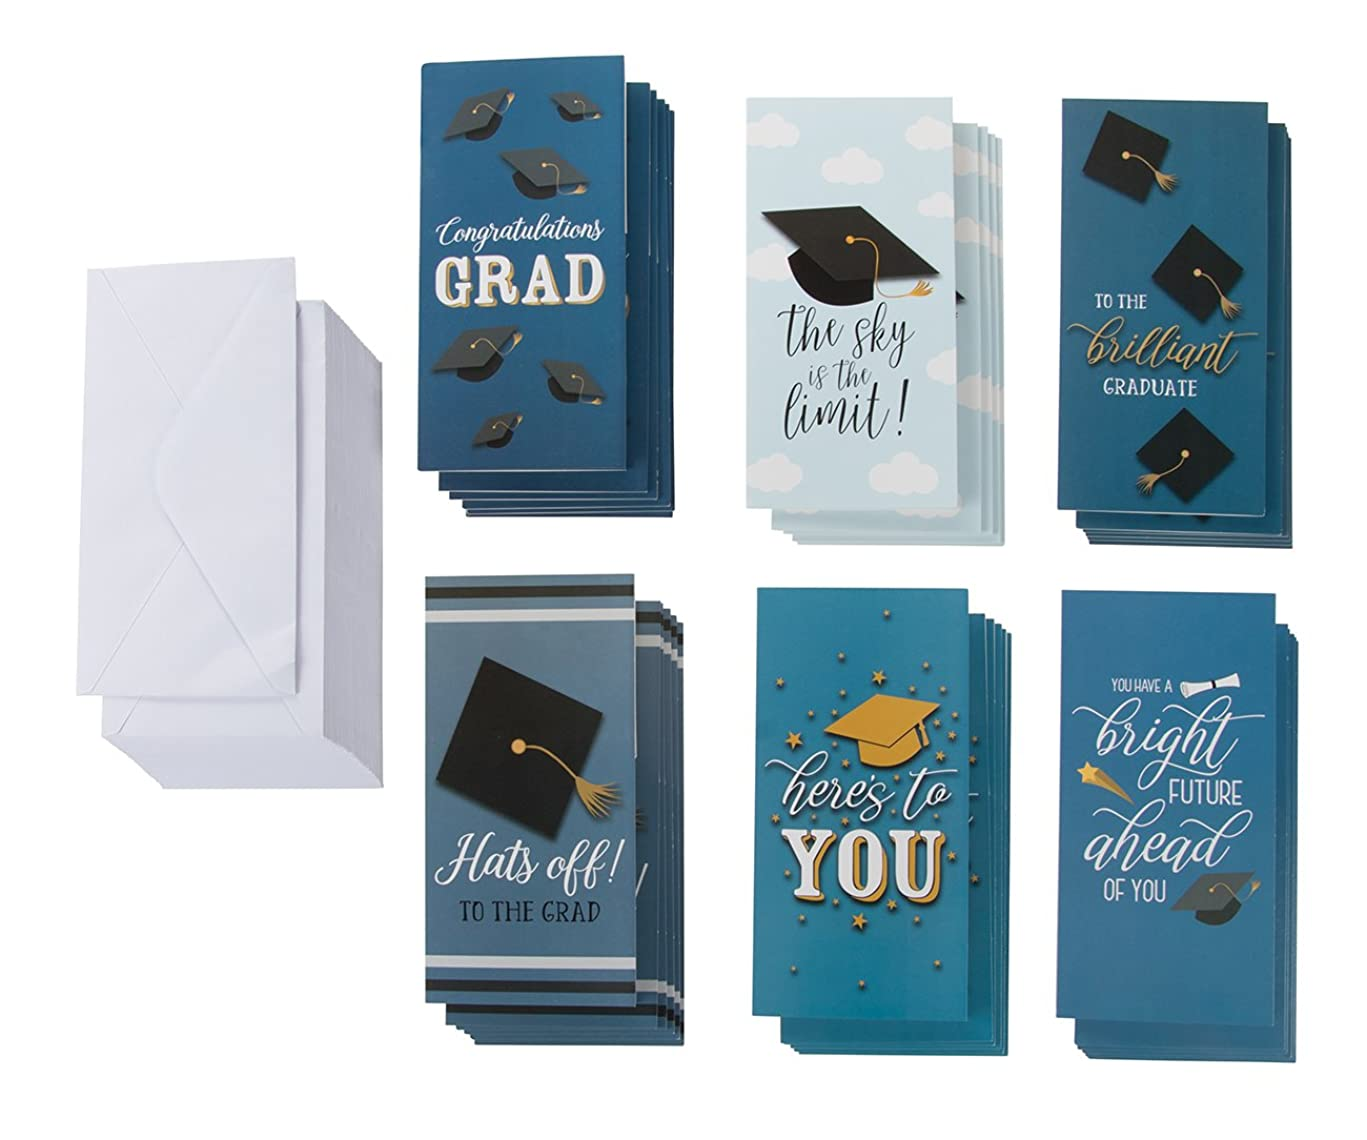 36-Pack Graduation Cards – Money Cards, 6 Designs, Money Gift Card Holder Ideal for High School, College and More, Graduation Party Favors, Envelopes Included, 3.5 x 7.25 Inches